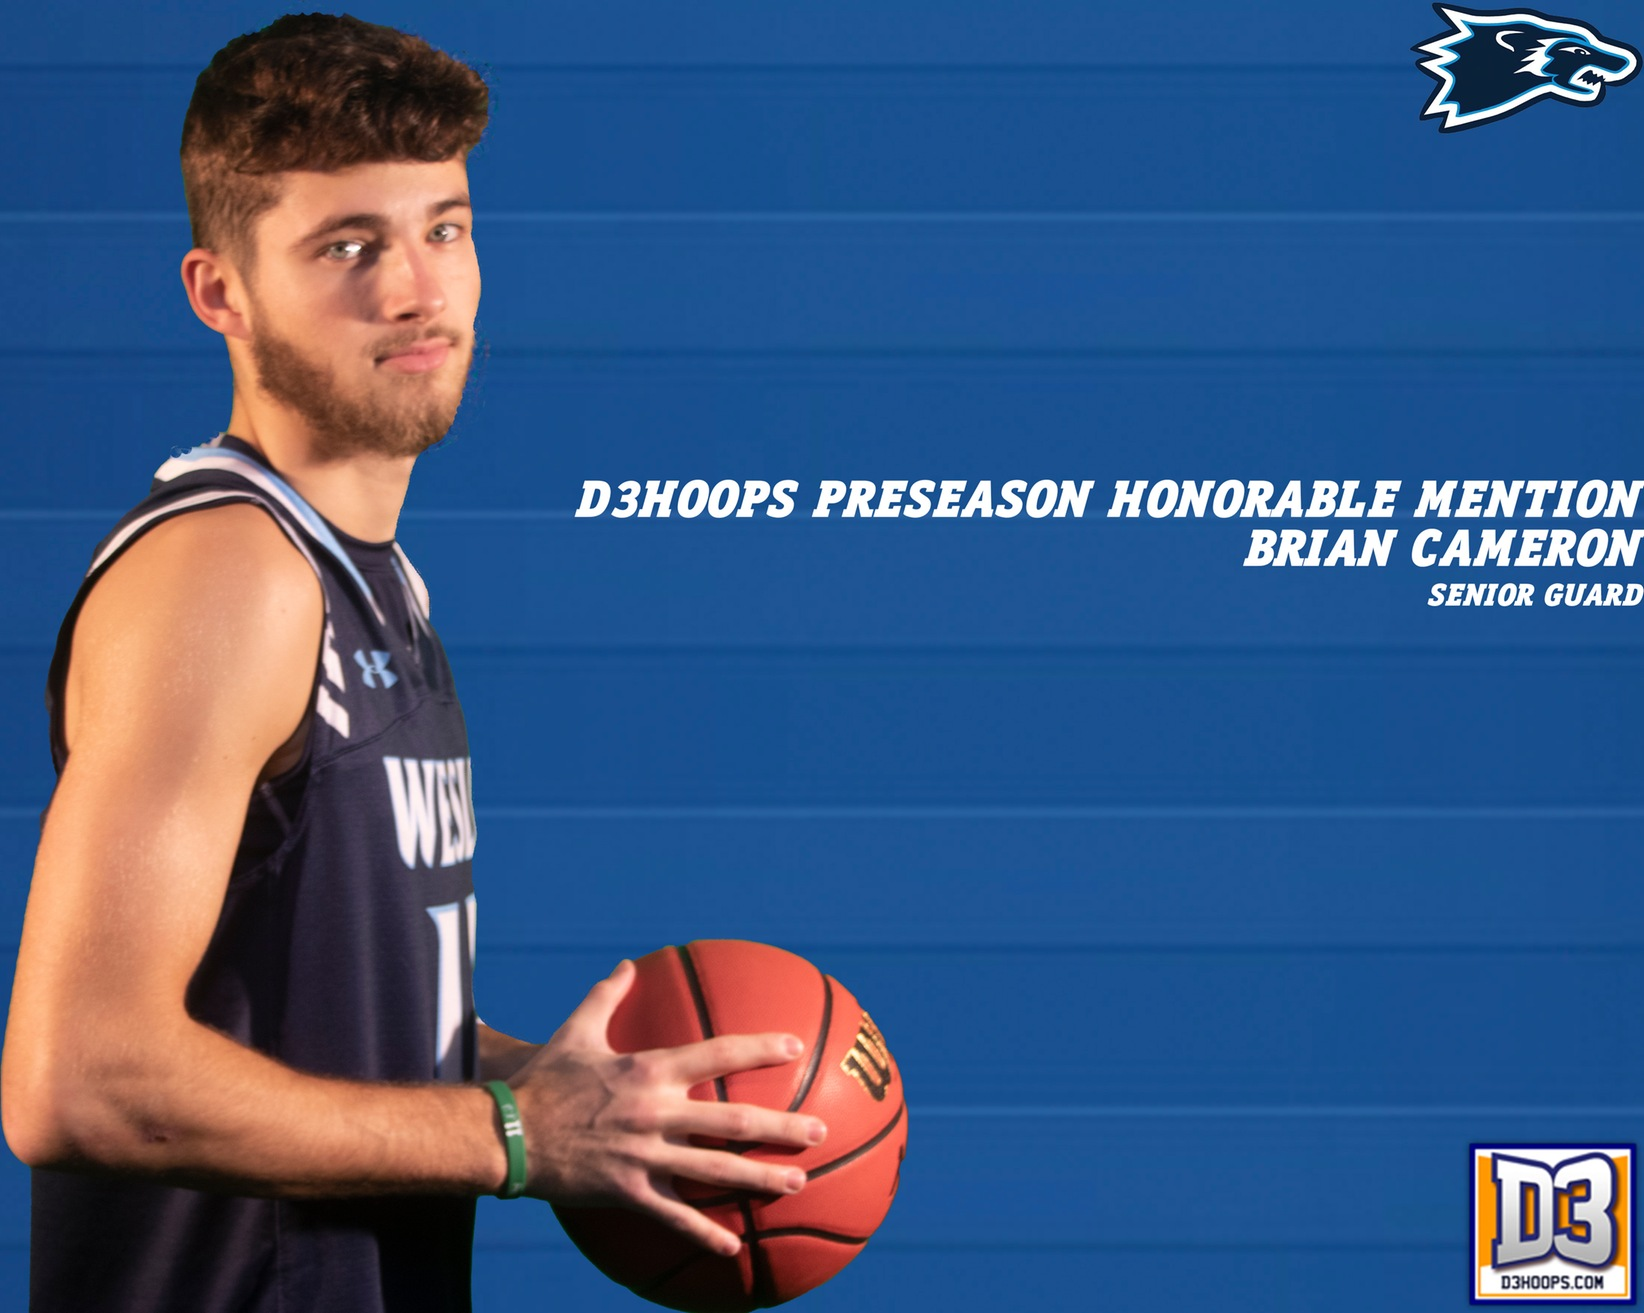 Men's Basketball Brian Cameron Earns D3Hoops Pre-Season Honorable Mention